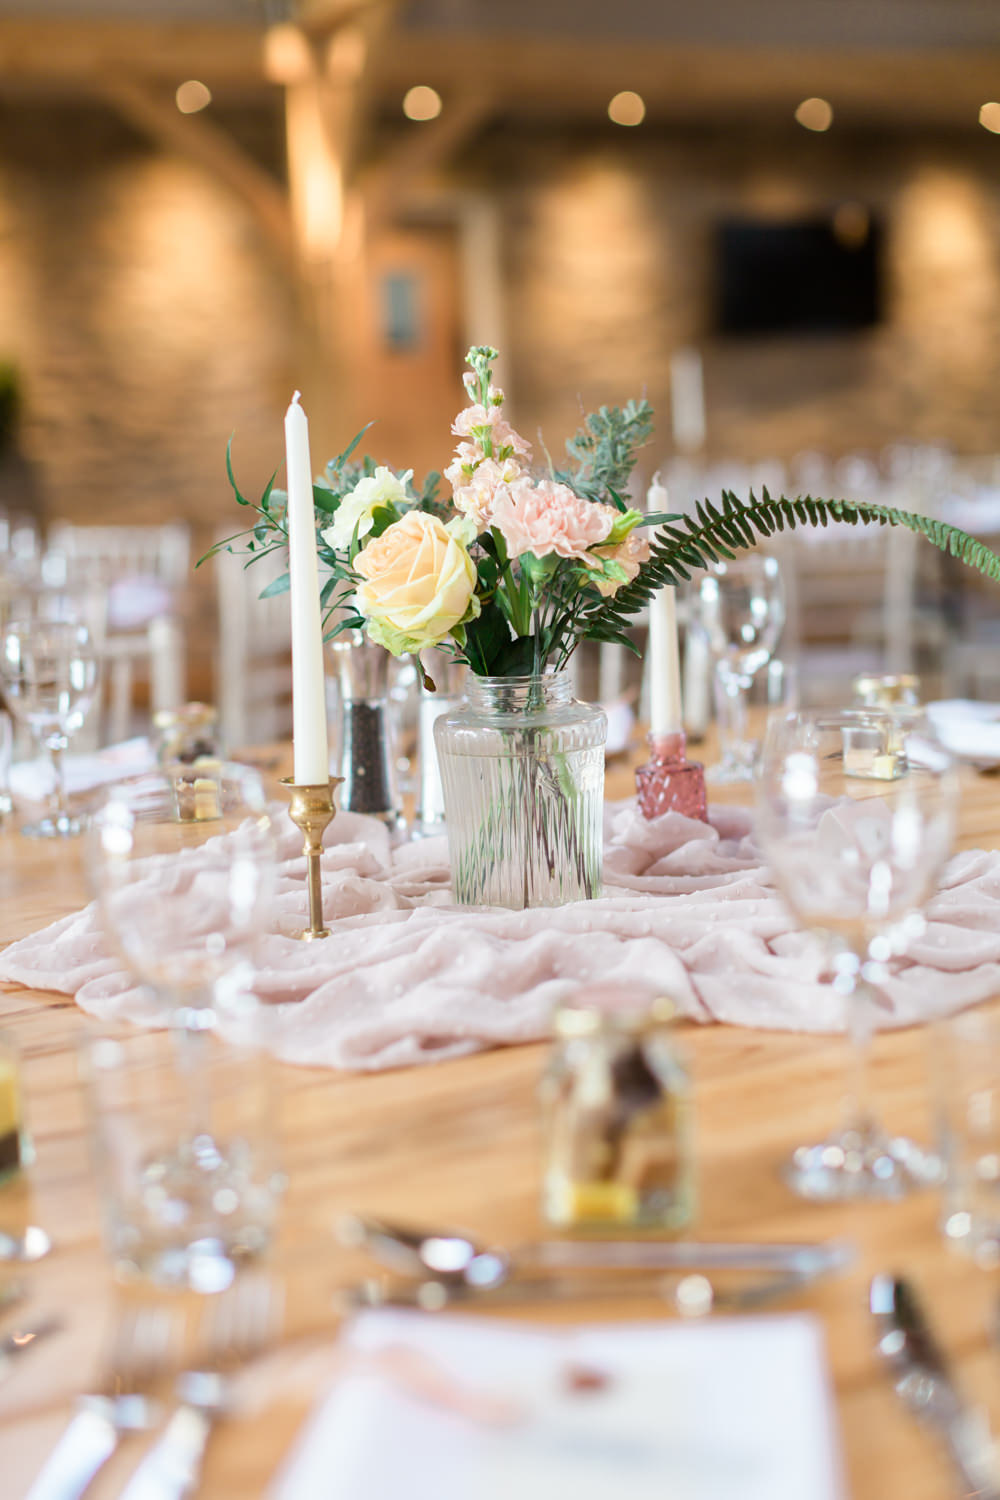 Centrepiece Flowers Silk Flowers Bottle Candle Stick Blush Pink Doxford Barns Wedding Lara Frost Photography